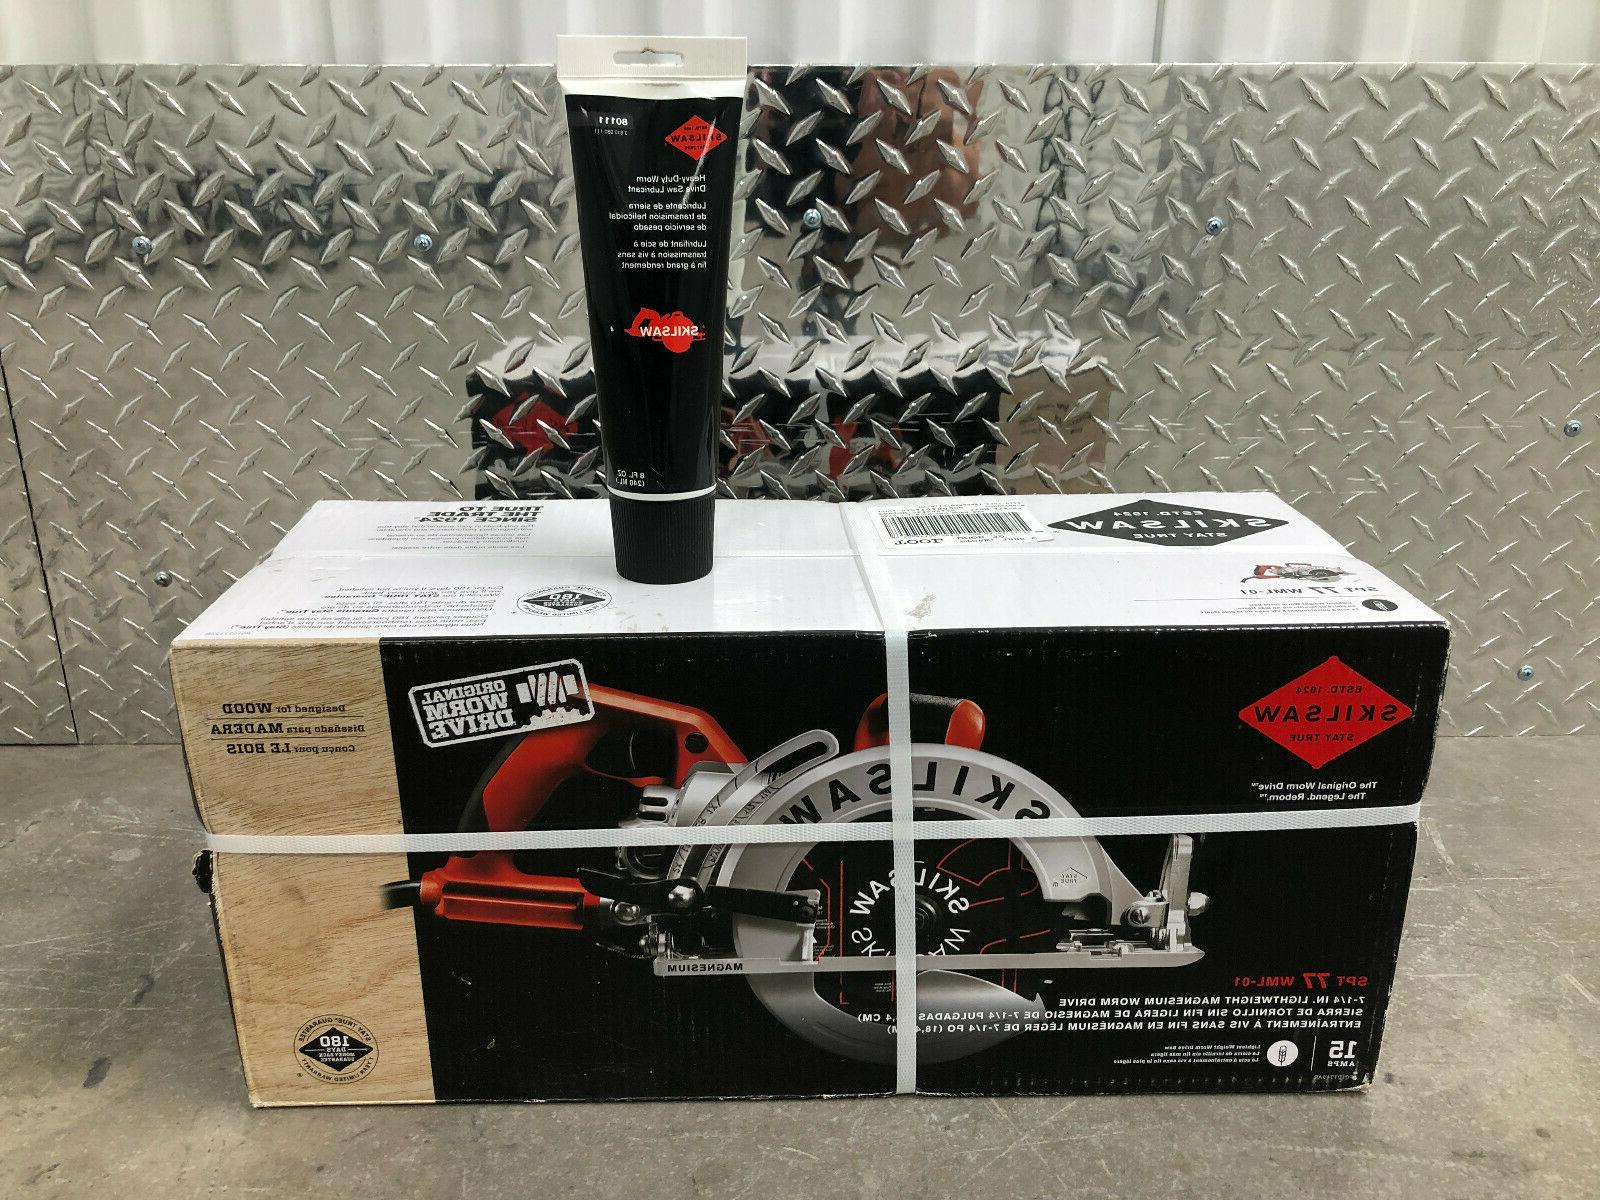 Skilsaw Saw 1/4-in. Oil BRAND